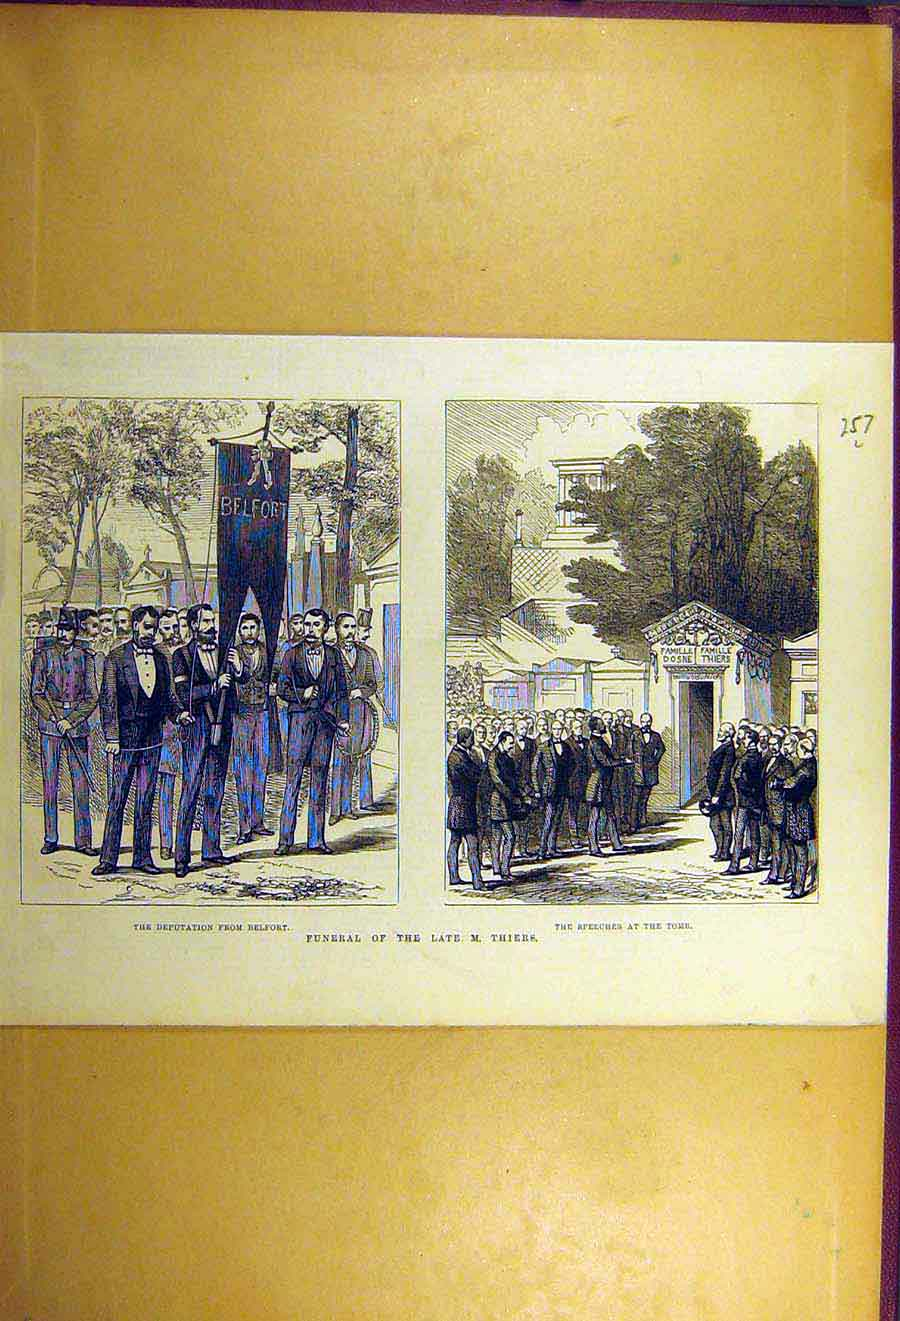 Print 1877 Deputation Belfort Funeral Thiers Tomb Speech 57Lccc1 Old Original